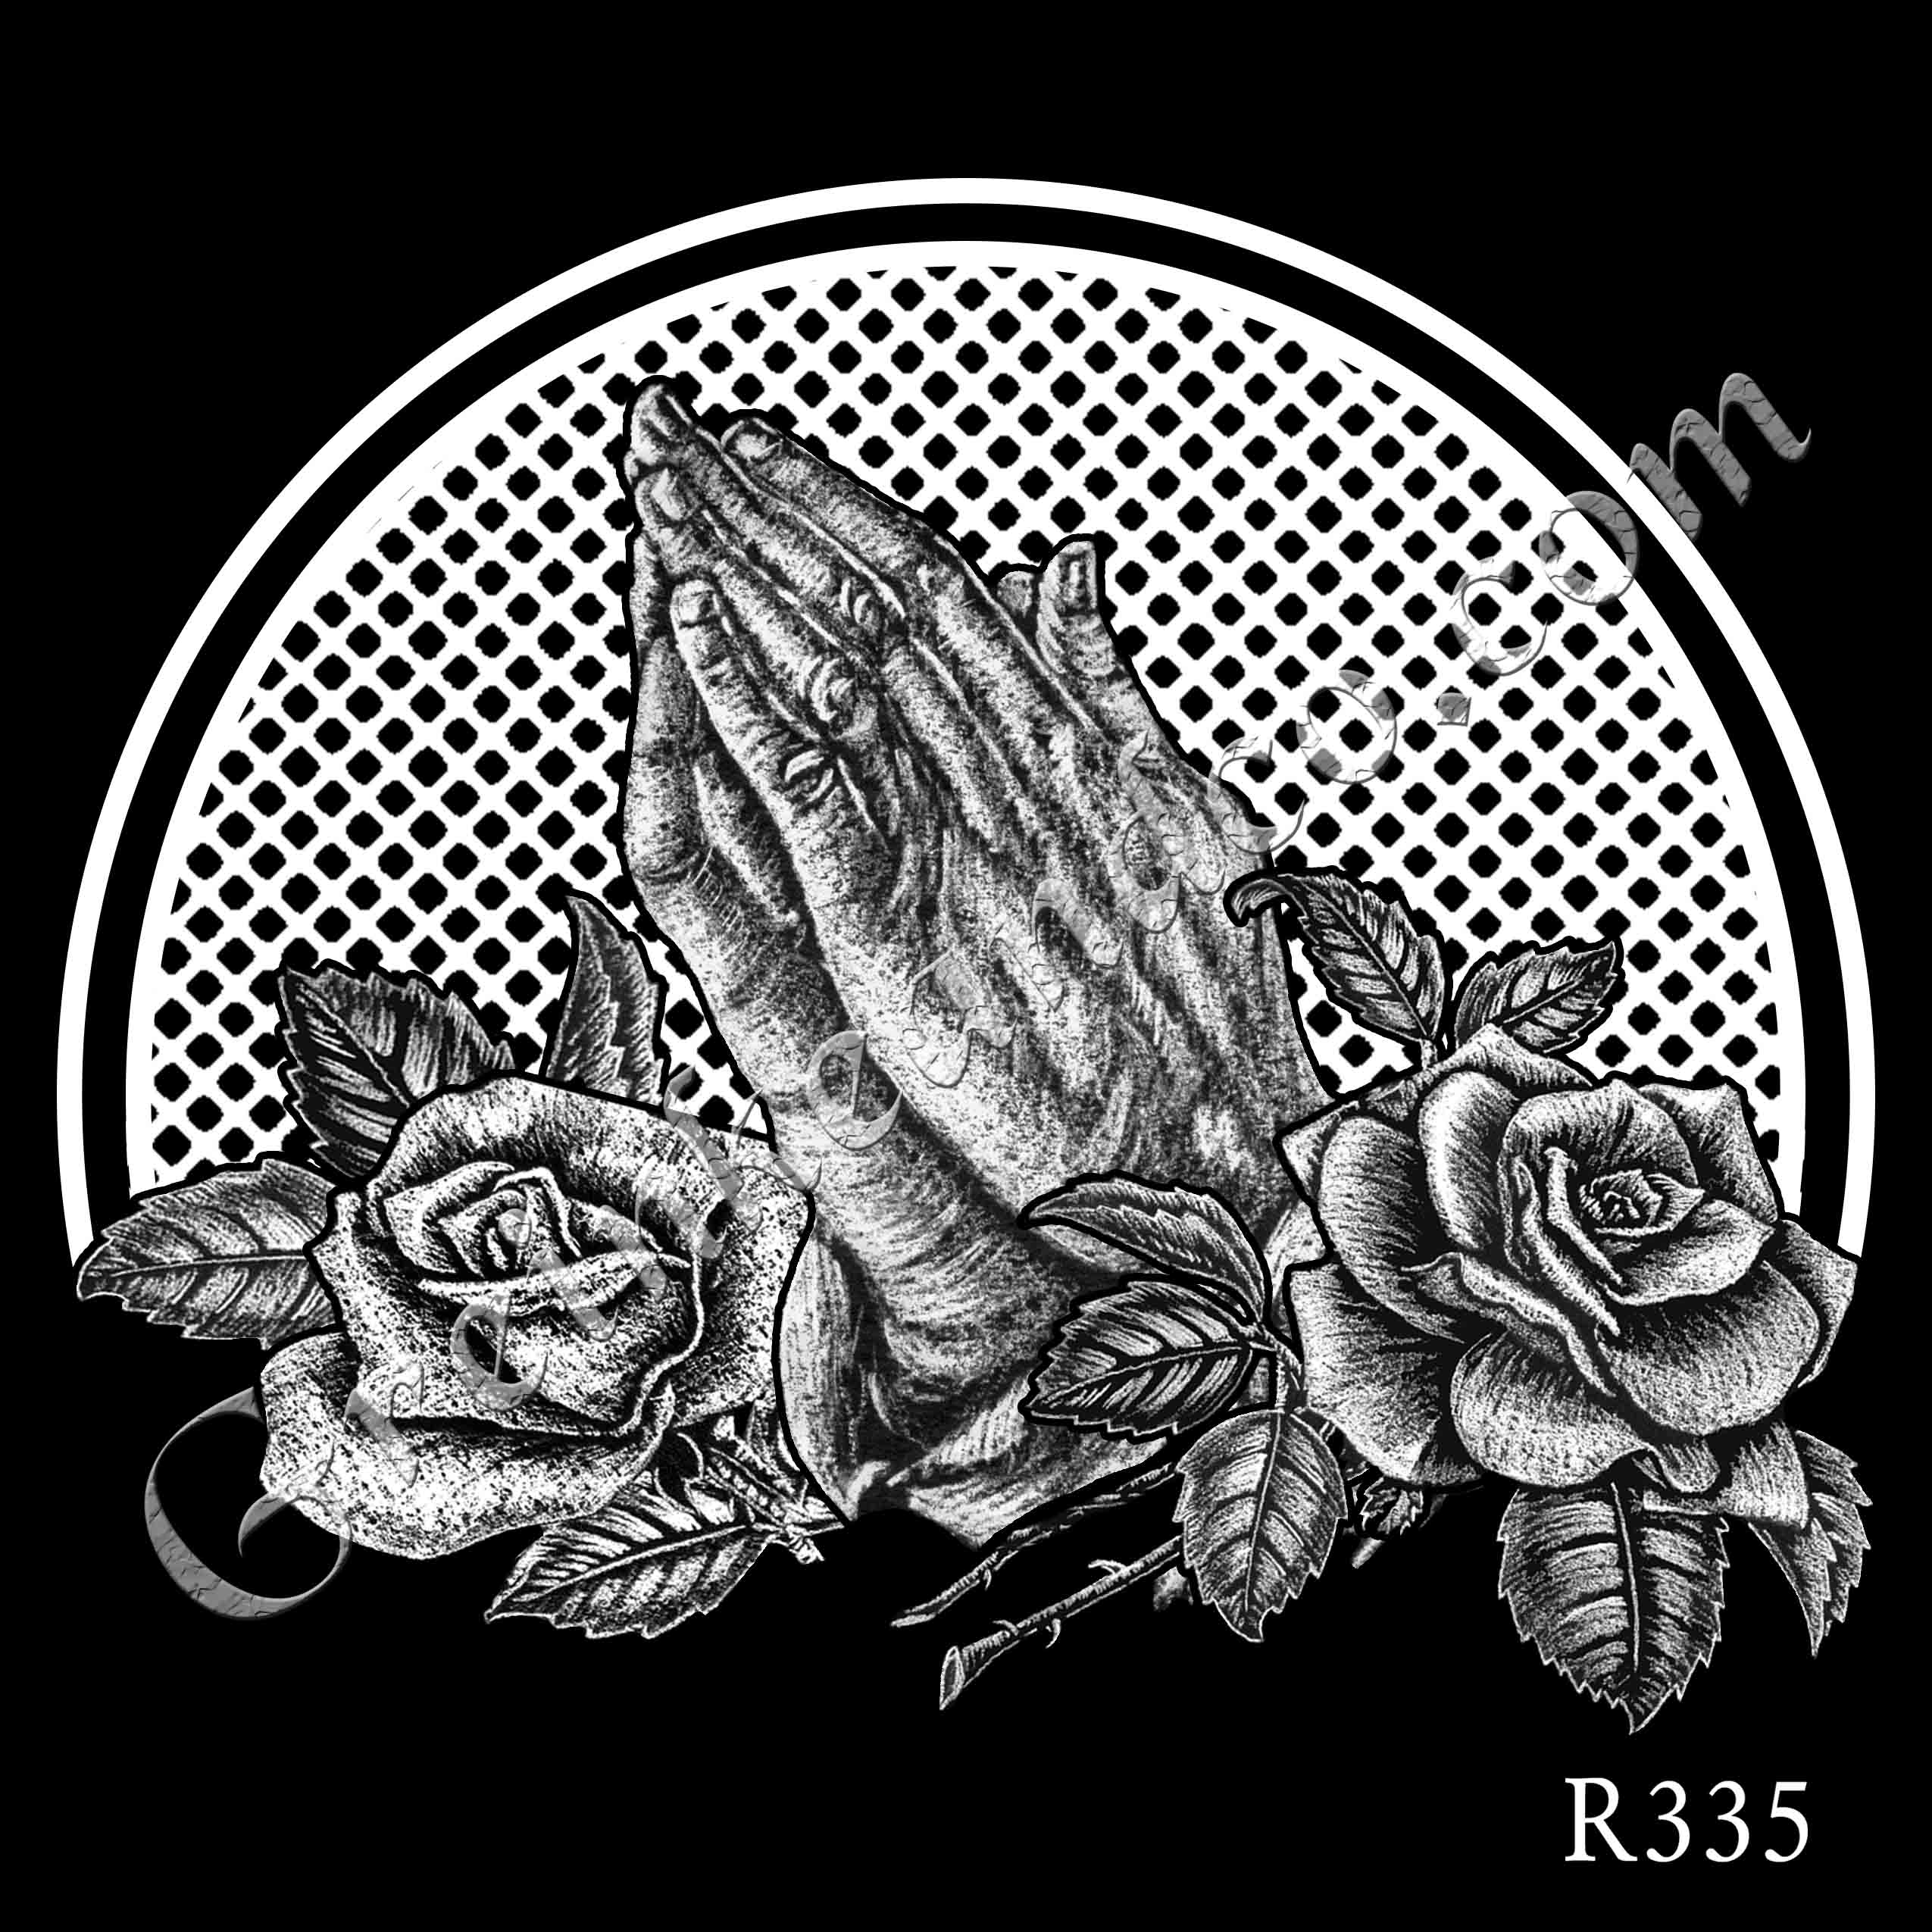 R335 - Praying Hands with Roses